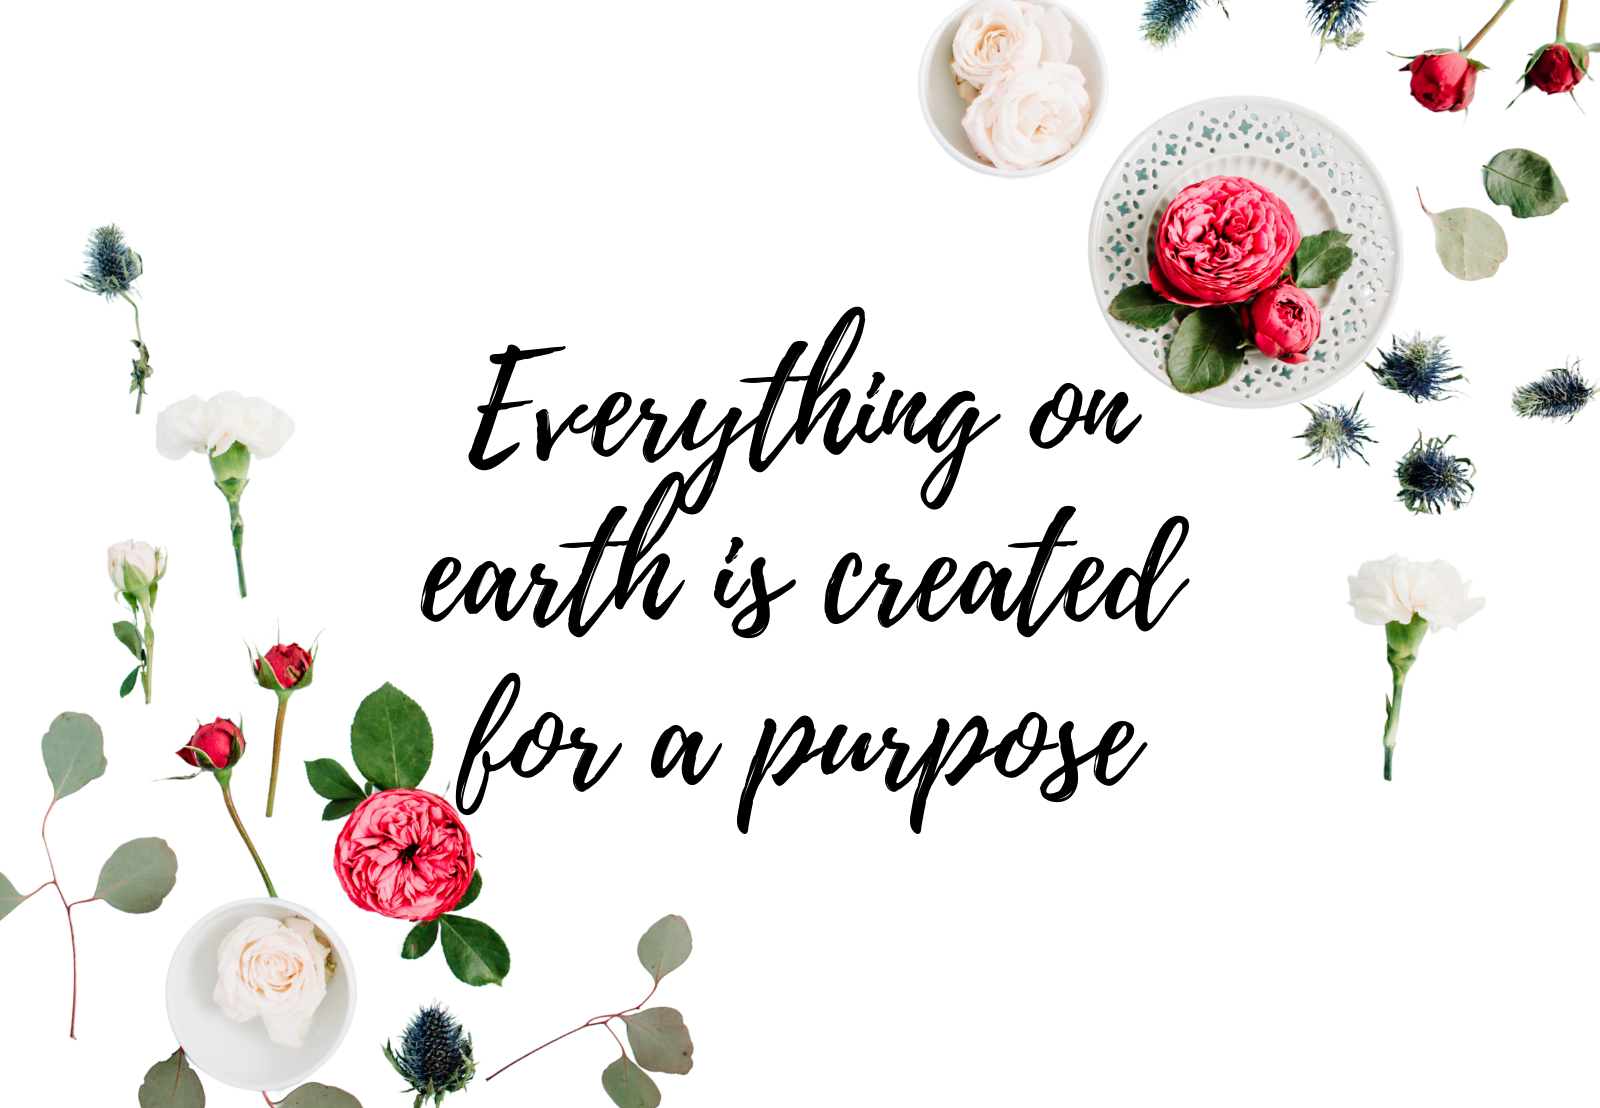 Everything on earth is created for a purpose